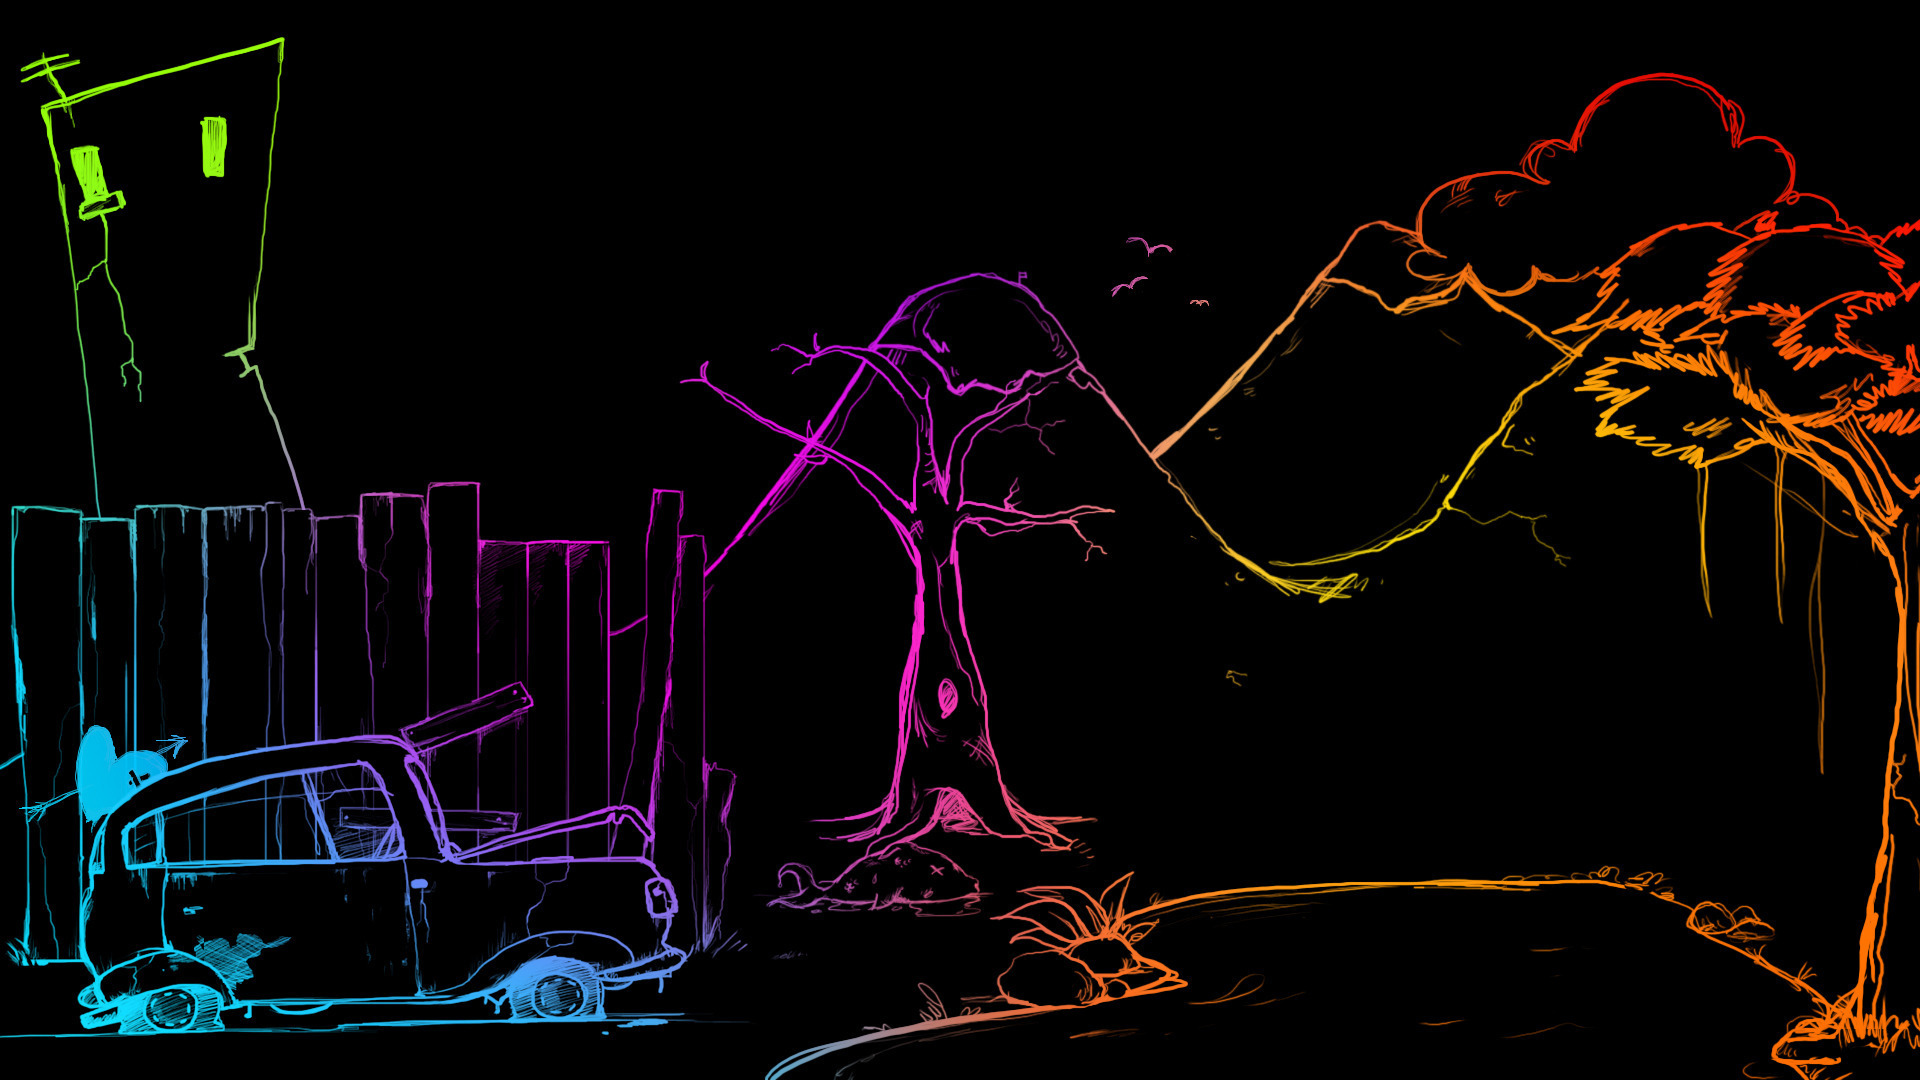 tag neon art wallpapers - photo #40